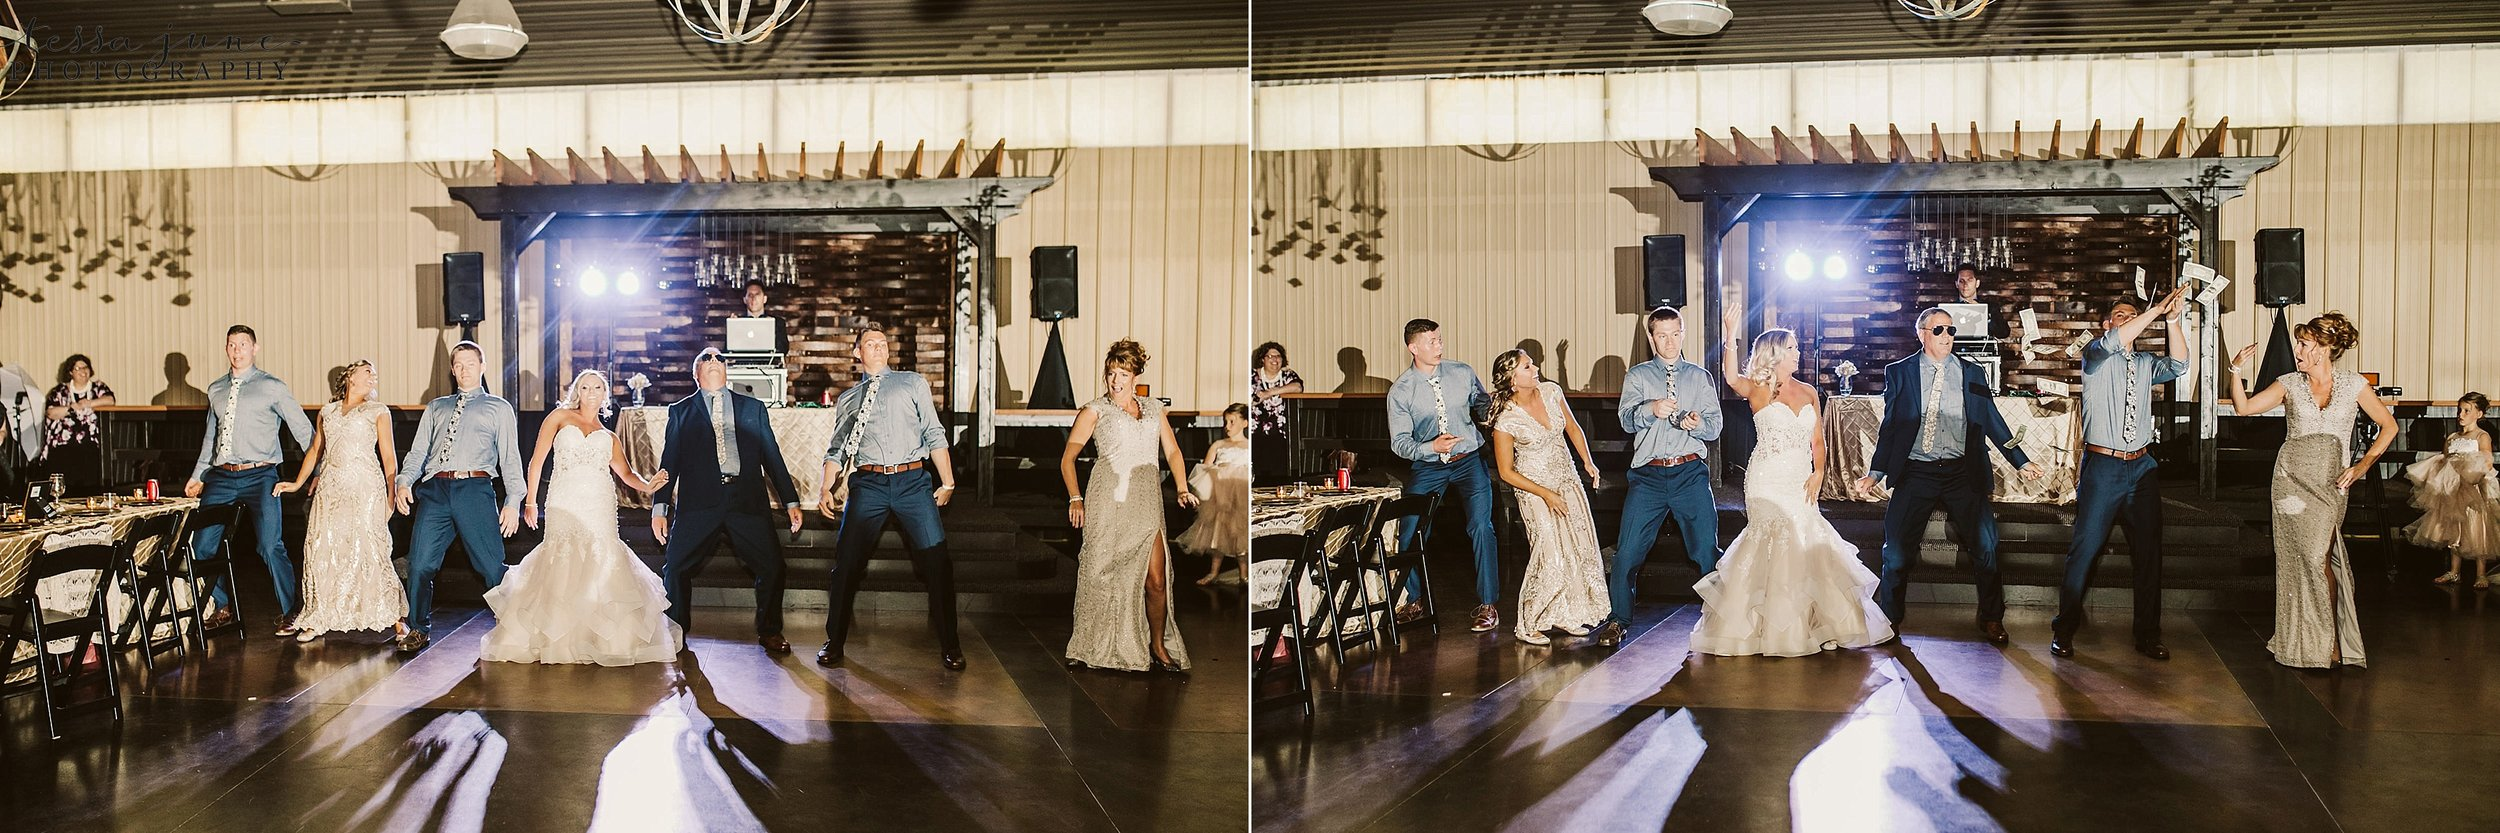 carlos-creek-winery-wedding-alexandria-minnesota-glam-elegant-floral-140.jpg